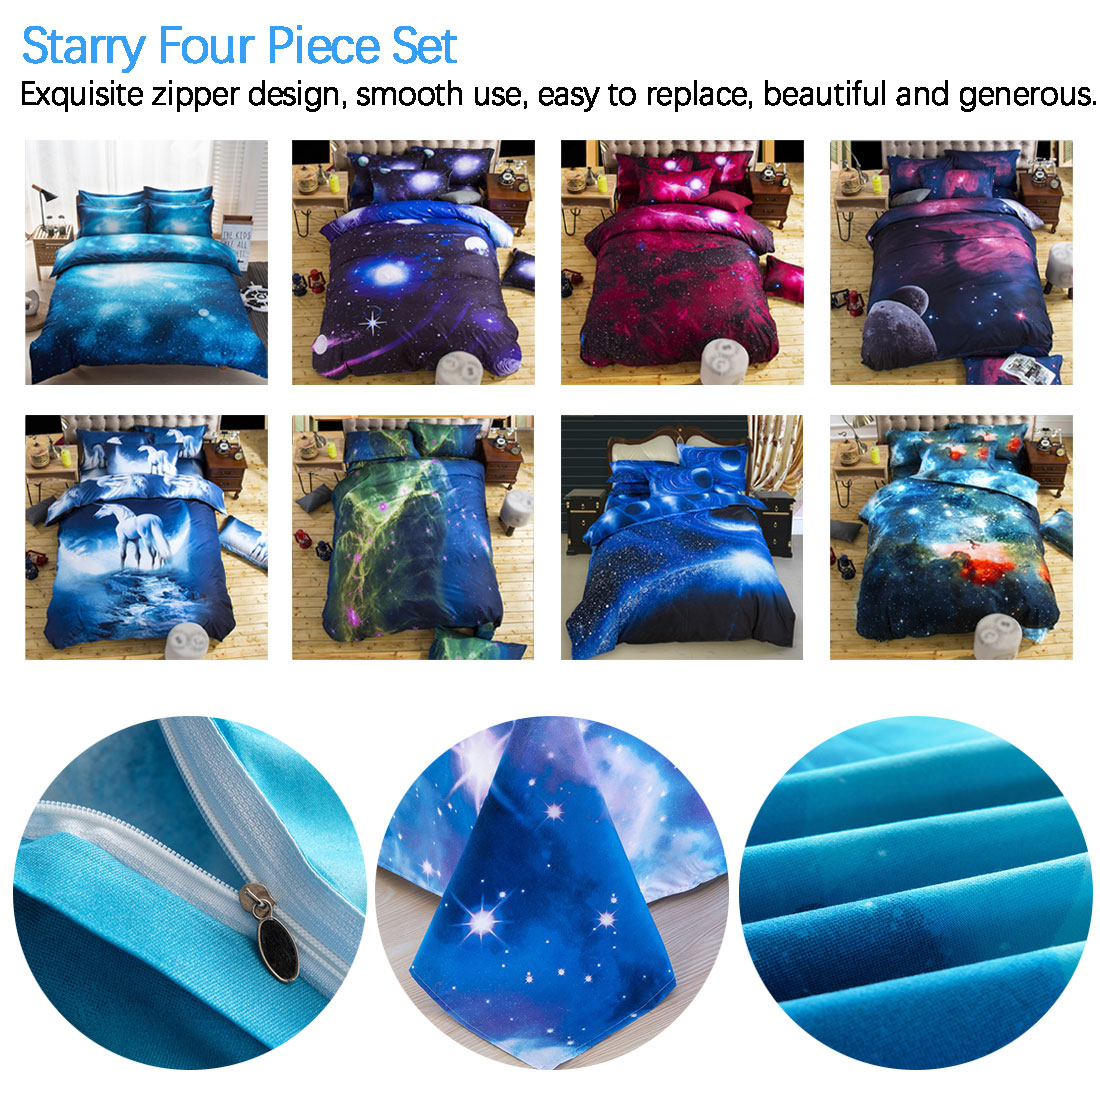 Hot Sale Home Textiles Starry Four piece Quilt Cover 3D Galaxy Bedding Luxury Soft Stylish Home Decor Bedding|Bedspread| |  - title=